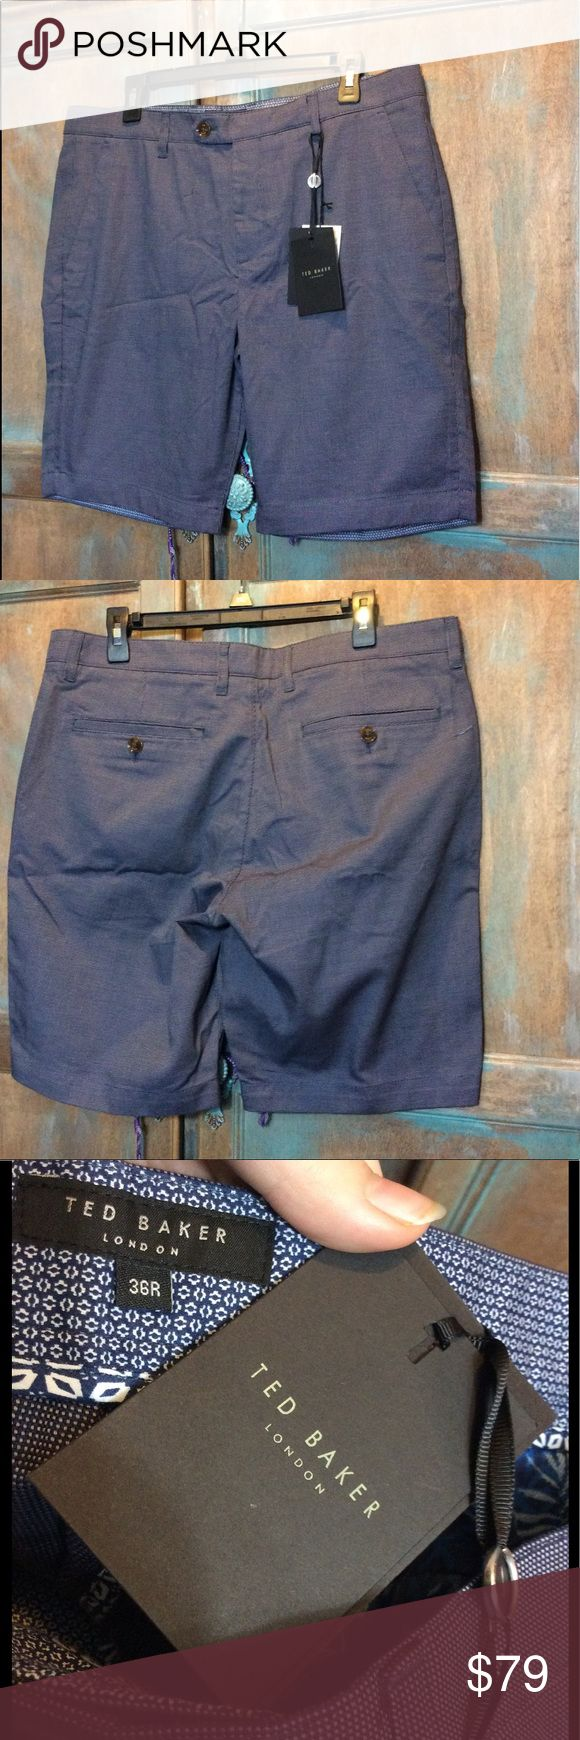 Ted Baker London shorts NWT size 36R Ted Baker London men's navy dot shorts. New with tags. Size 36R. Ted Baker London Shorts Flat Front